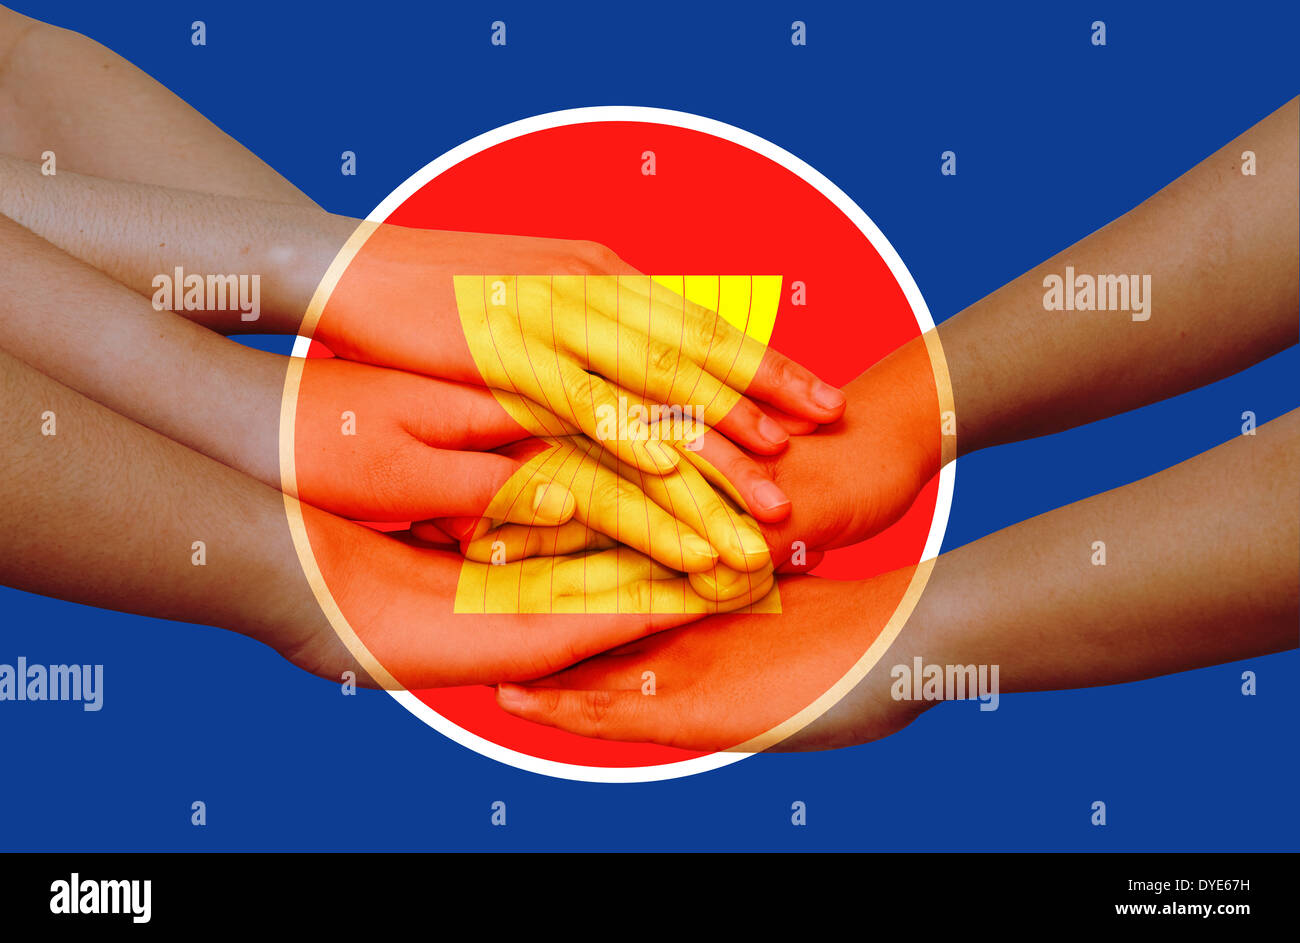 Hands on top of each other showing unity with icon of Asean Economic Community - Stock Image